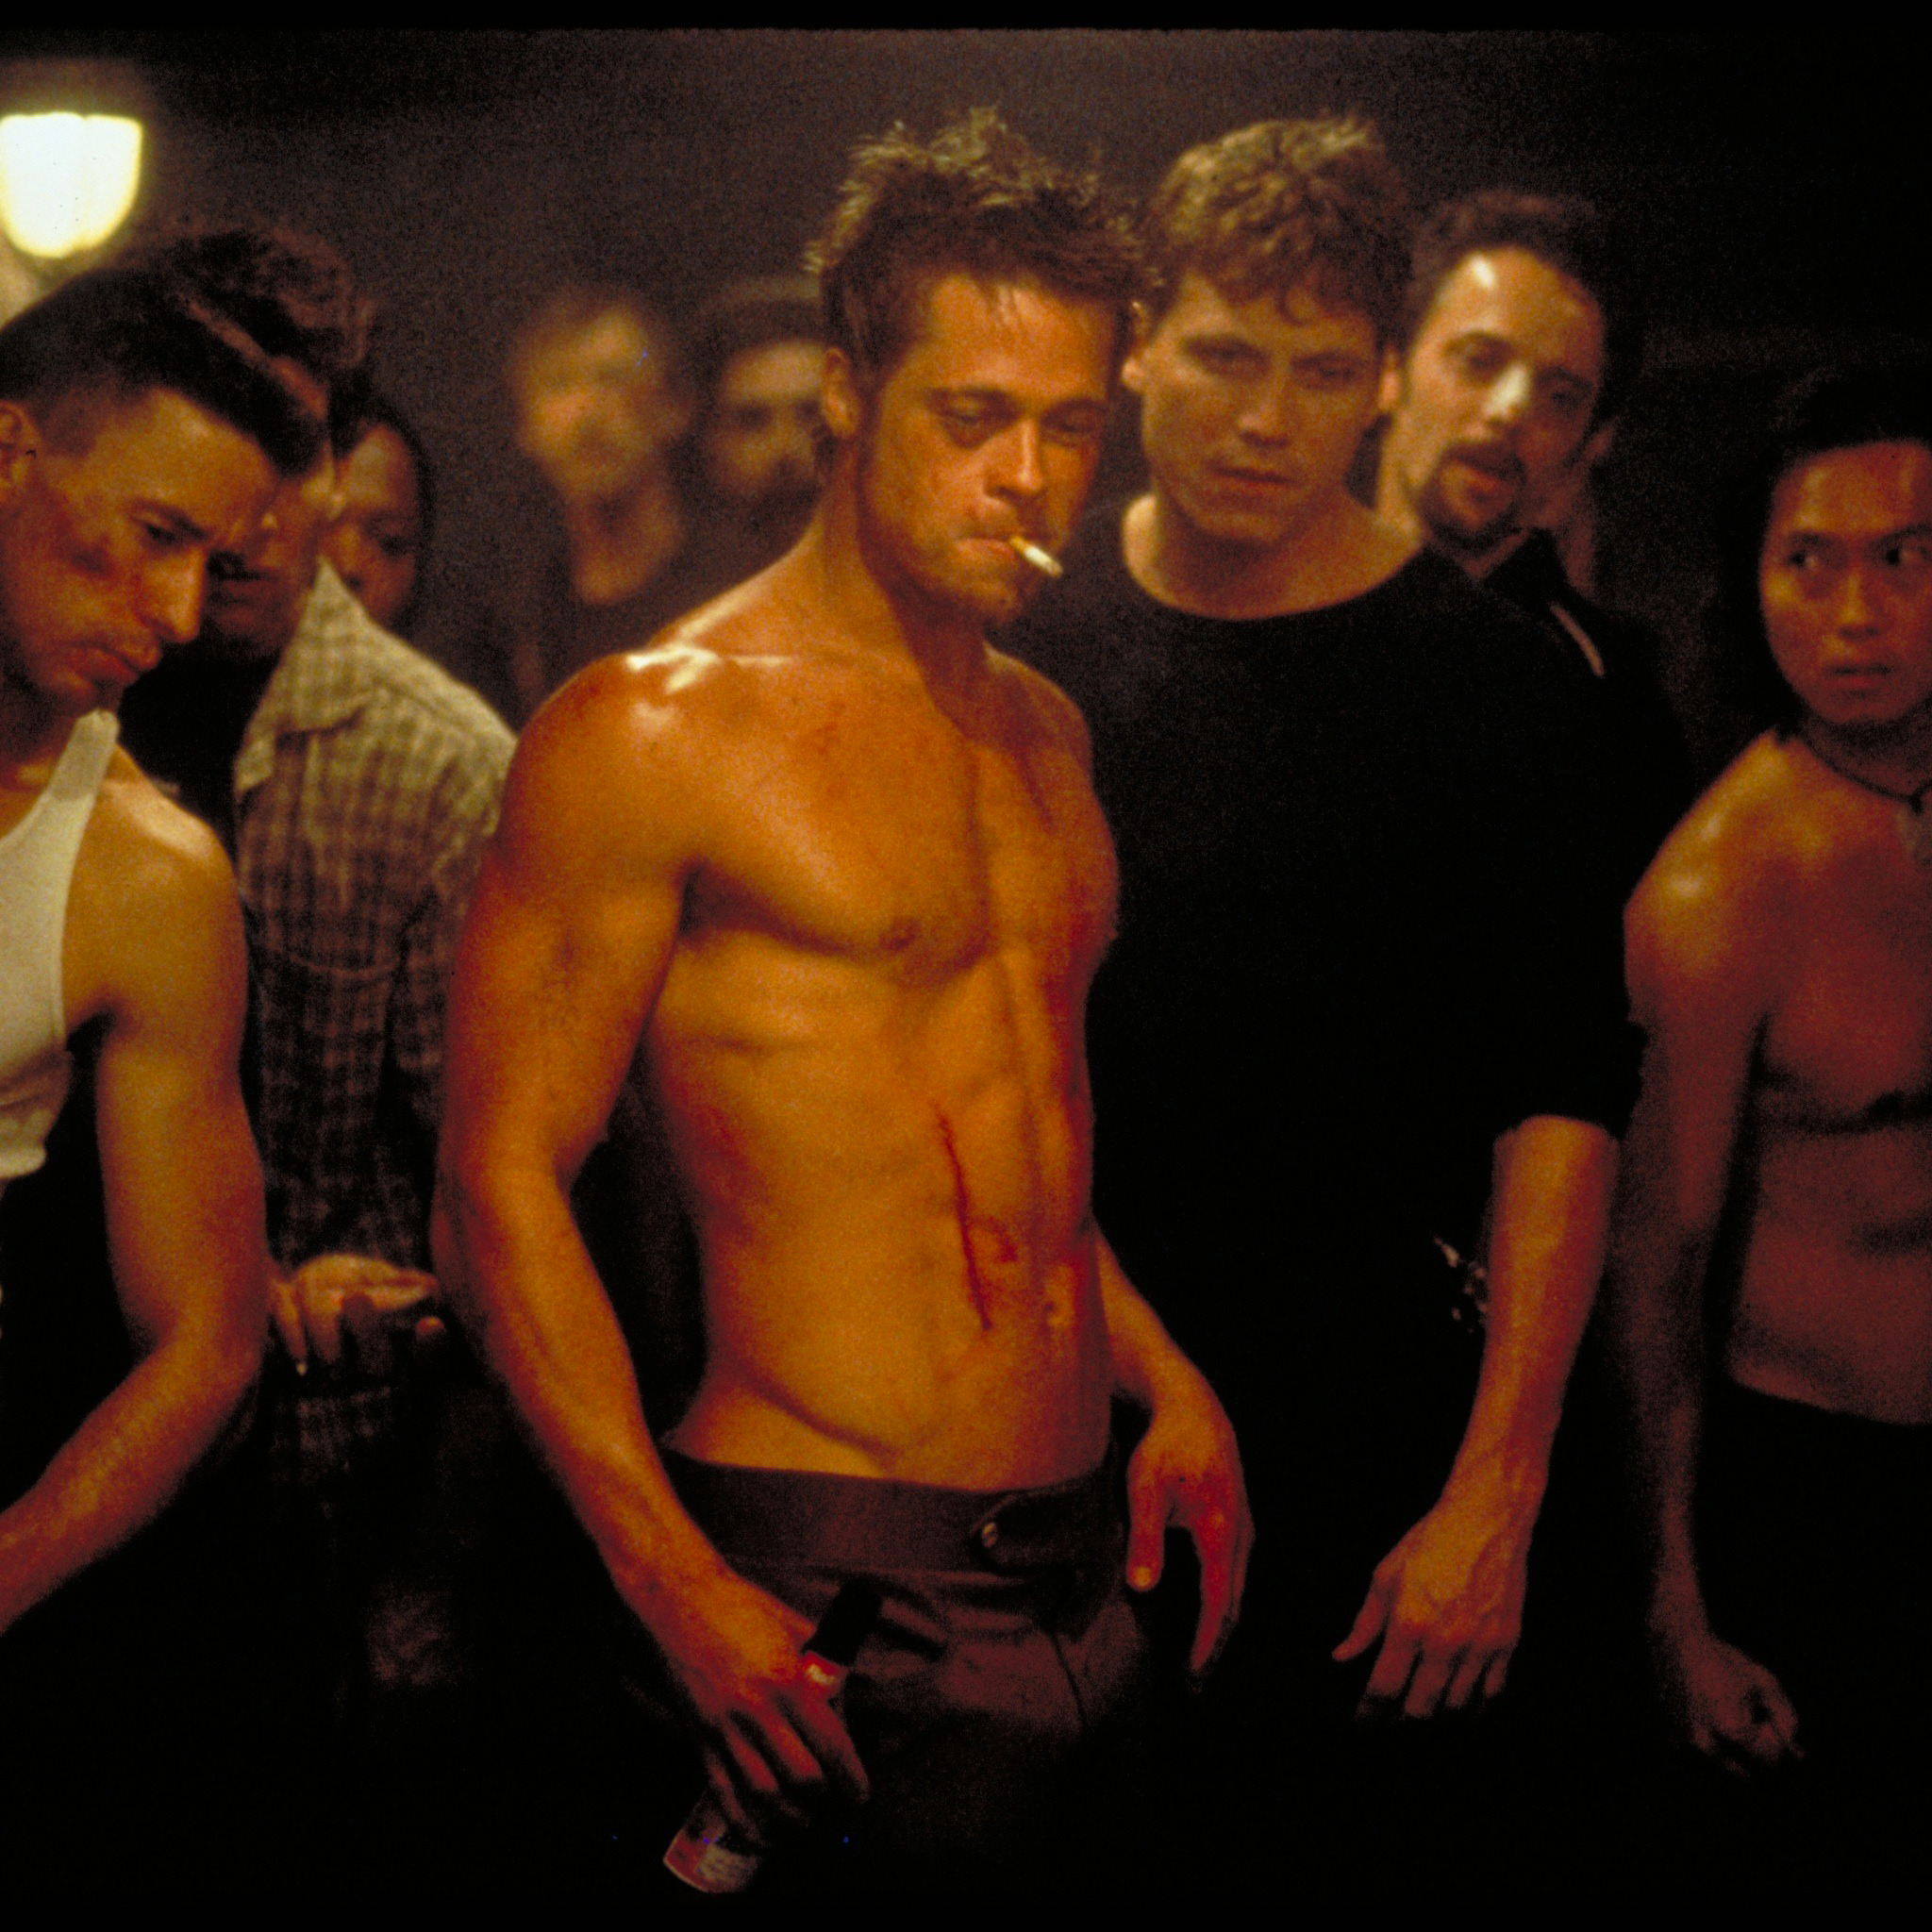 Brad Pitt Fight Club 3Wallpapers iPad Retina Brad Pitt   Fight Club   iPad Retina